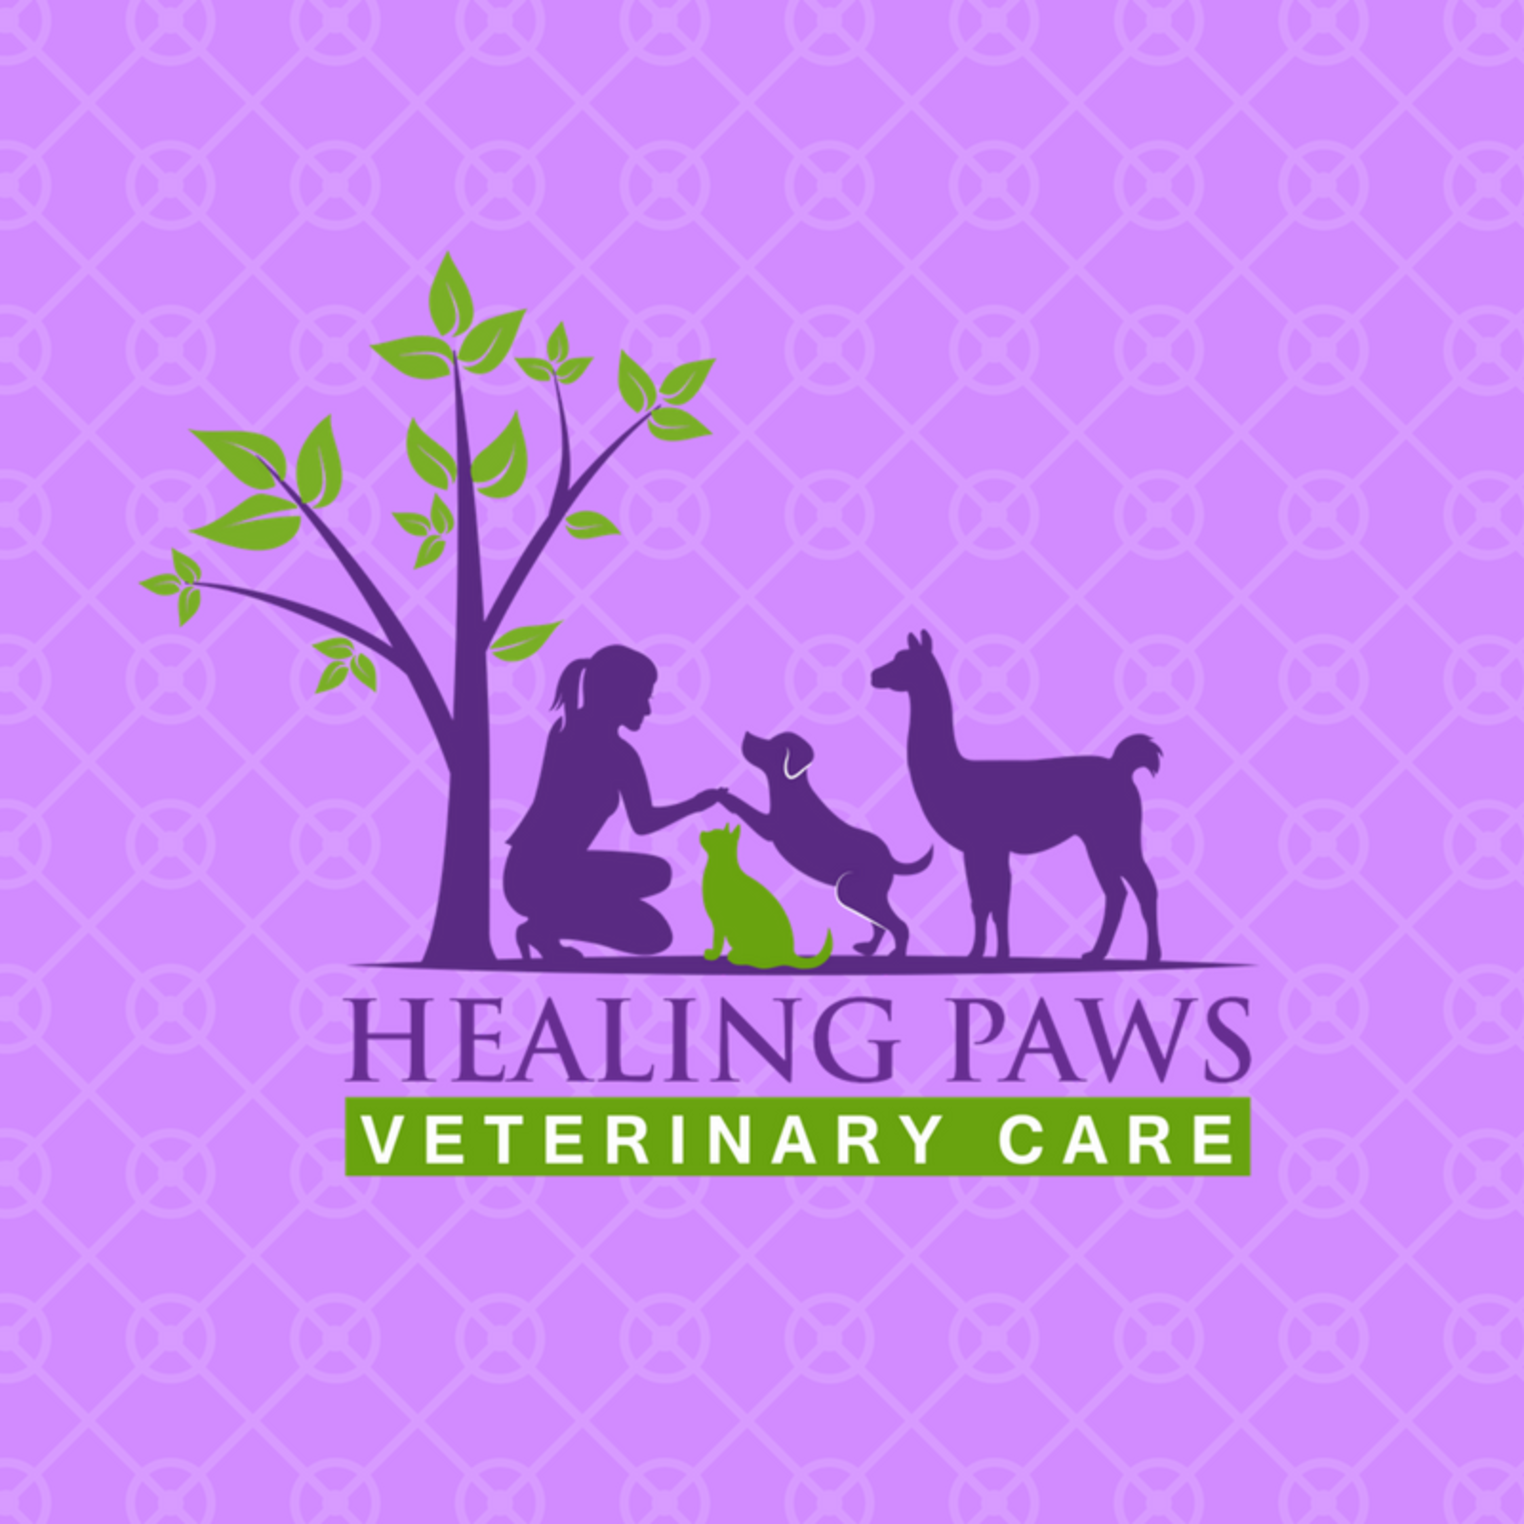 Healing Paws Veterinary Care